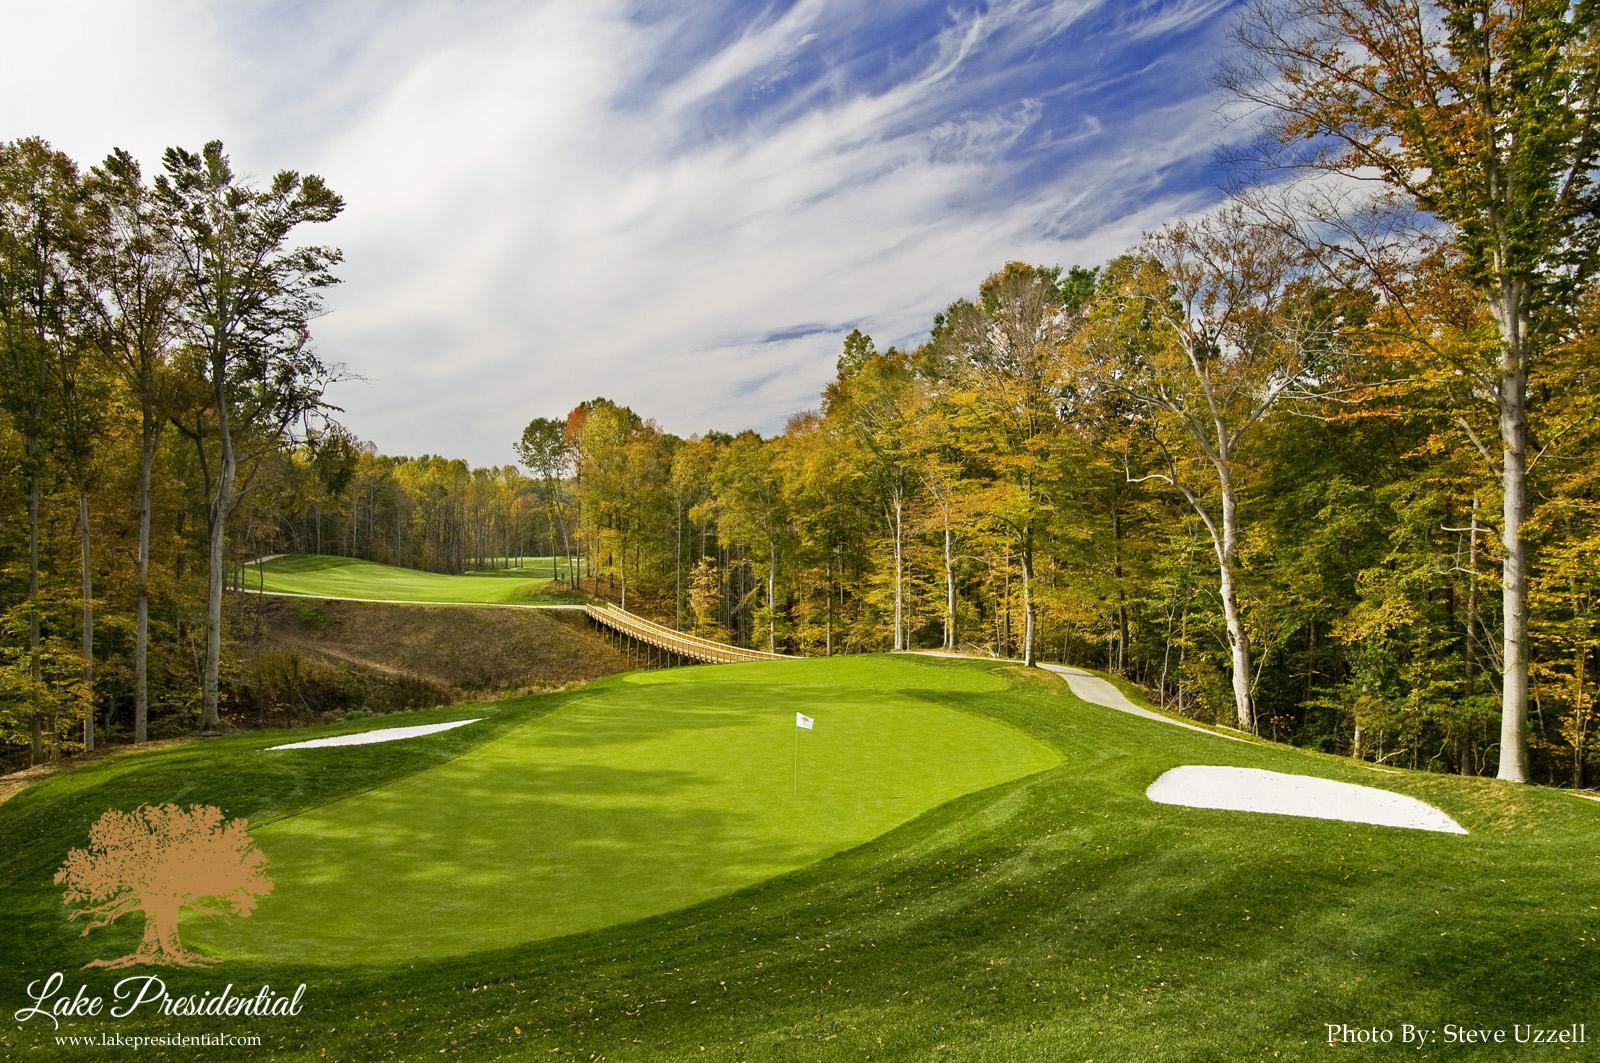 Fifth Annual Golf with a Cause - Frank R. Williams Scholarship Fund